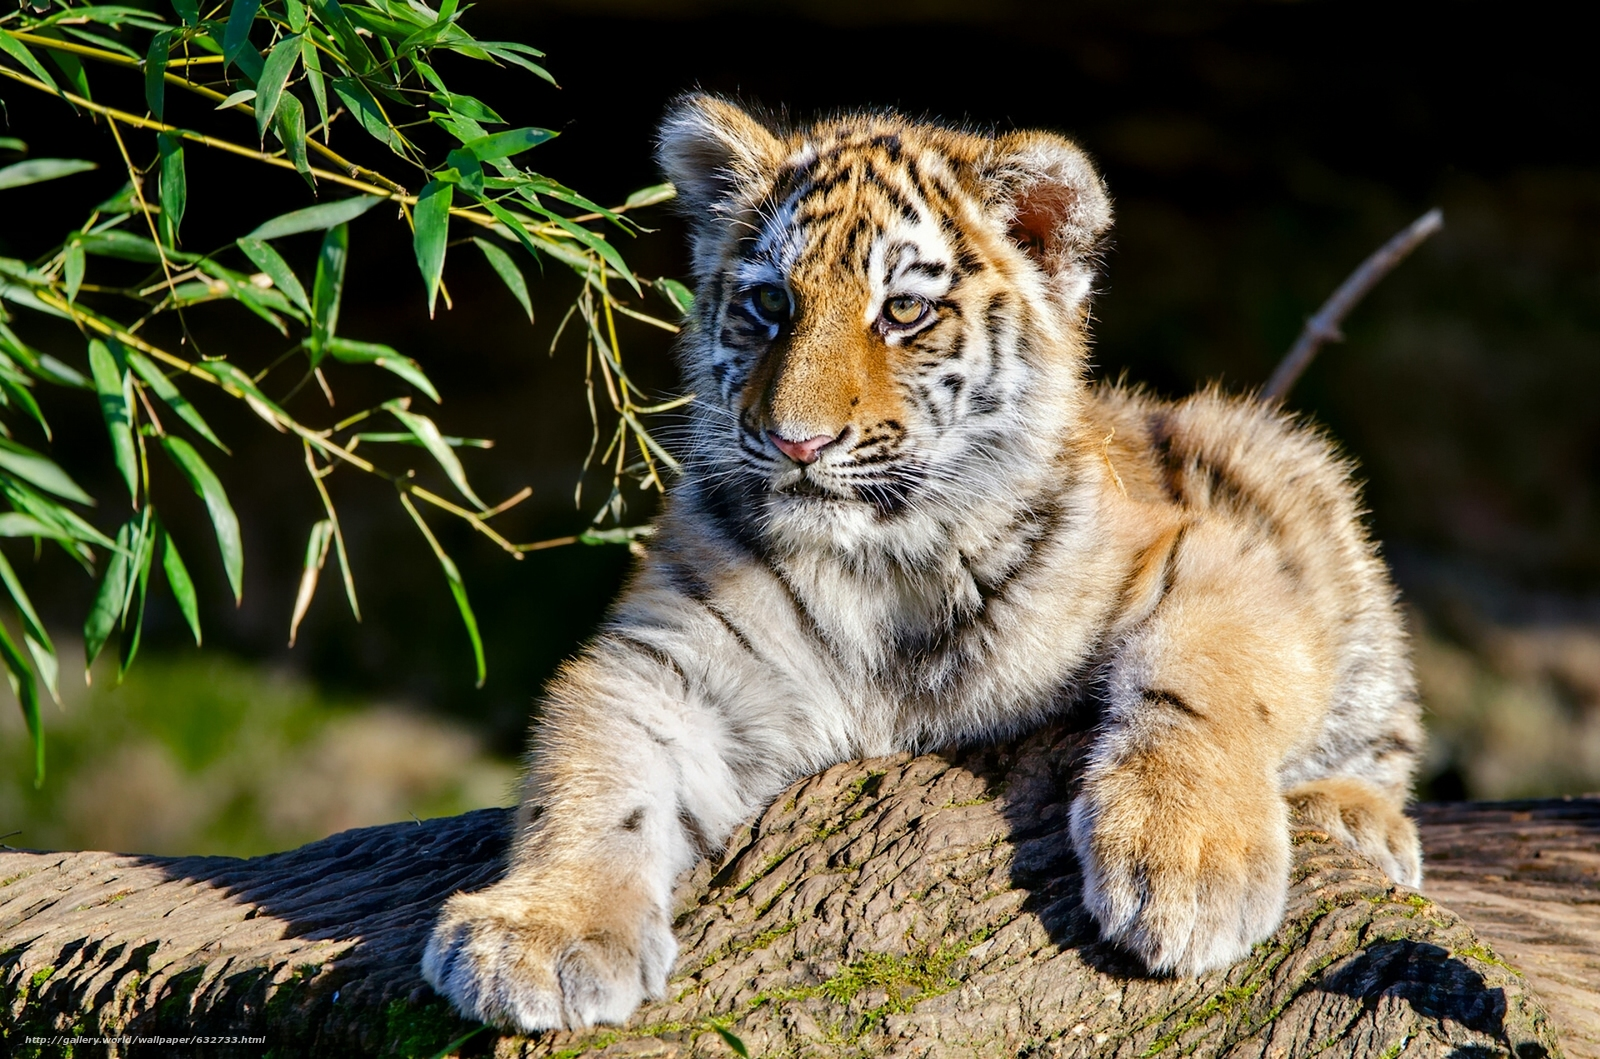 baby tiger images | Cute Tiger Baby Wallpapers Pictures Photos ...